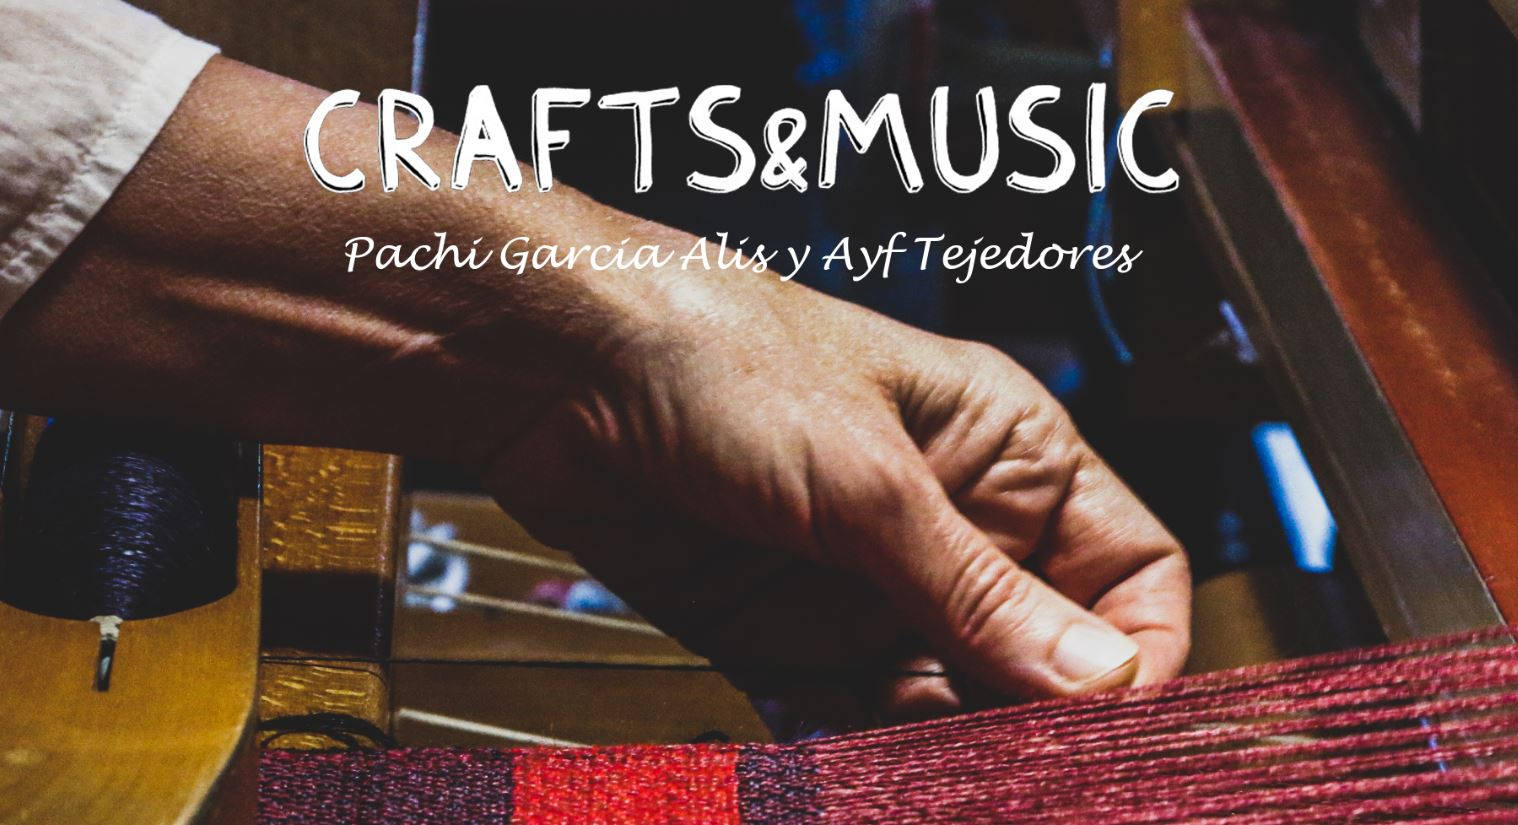 EOI-Fundesarte presents Crafts & Music at the II Edition of the International Craft Film Festival